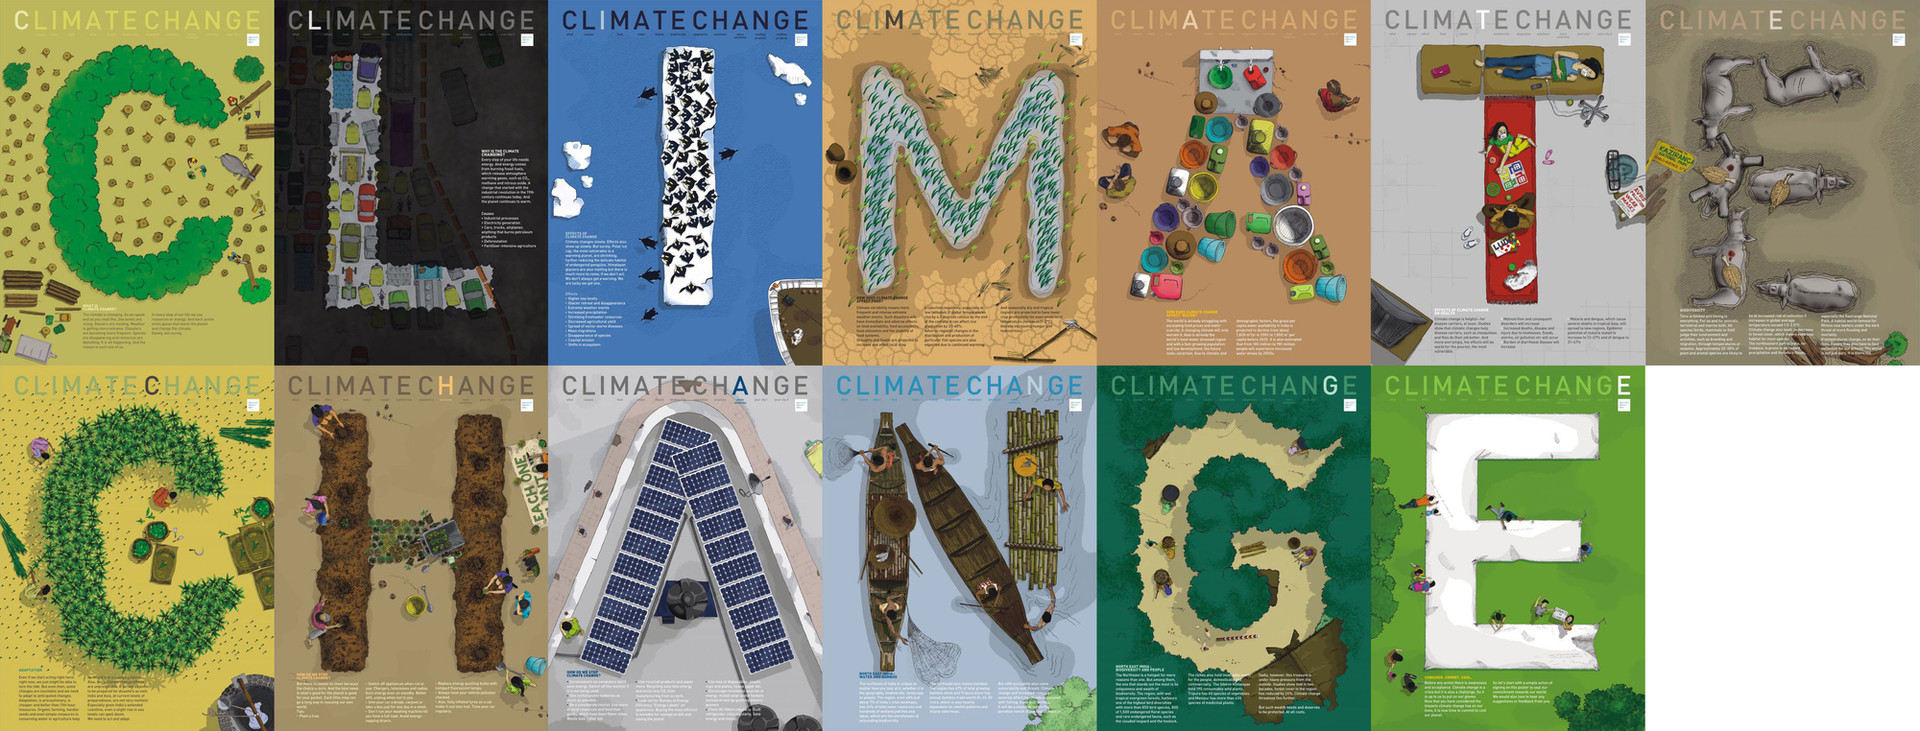 CMS's brief was to highlight some key topics on climate change in the form of illustrated posters. What they had in mind was 4 to 5 posters but we instead proposed a series of 13 posters, each poster containing an alphabet from 'climate change' on a size of 3x4 feet. When all the posters would come together on display, they would read 'climate change' from afar. This was at a macro level.